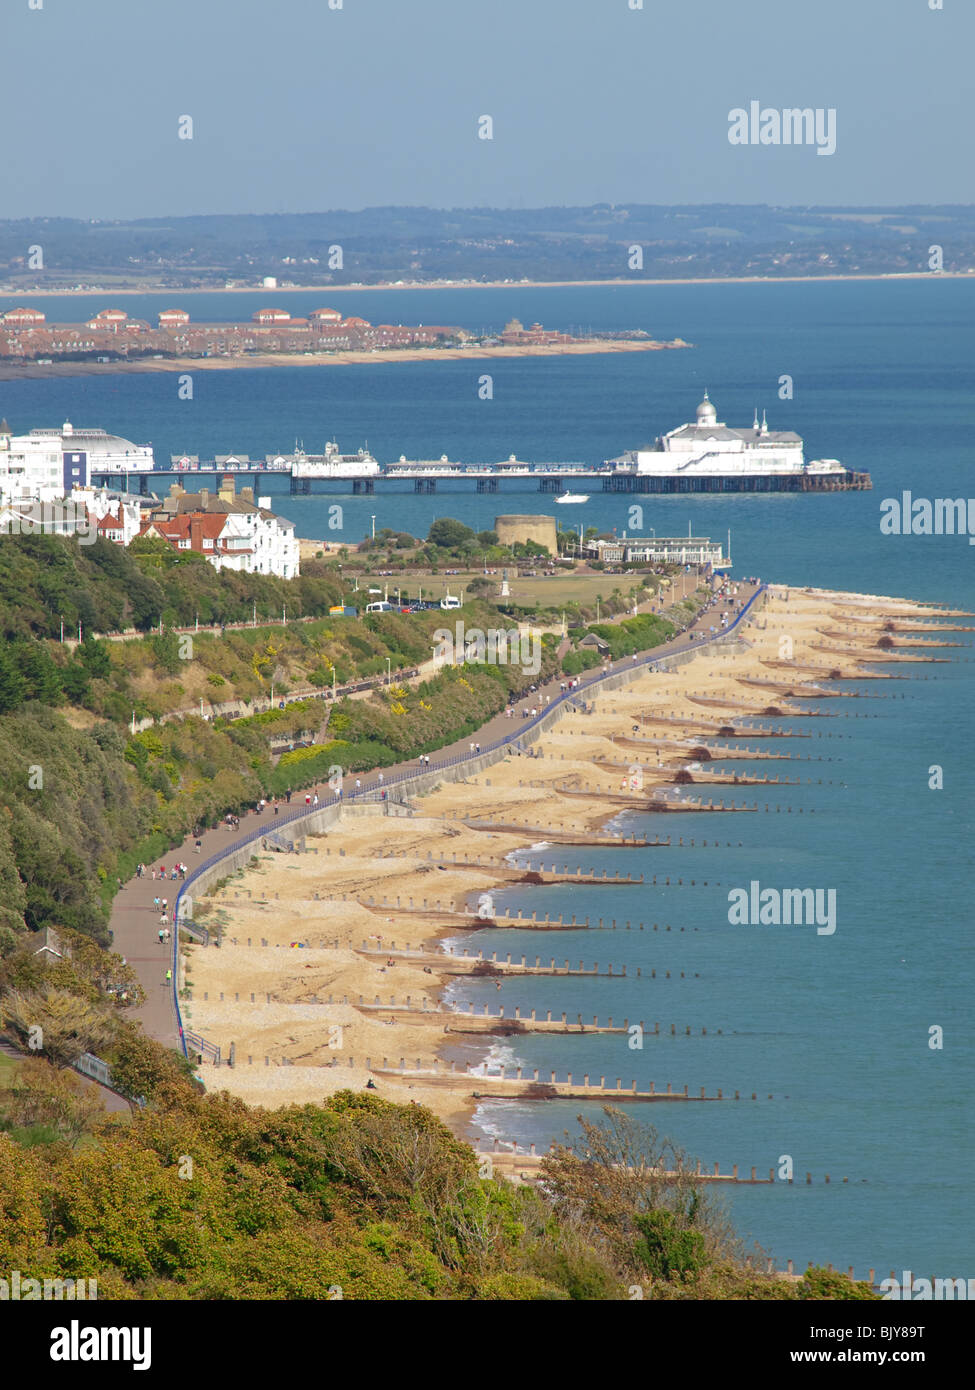 View of Eastbourne Seafront and Pier from South Downs Way, Sussex, England, UK Stock Photo